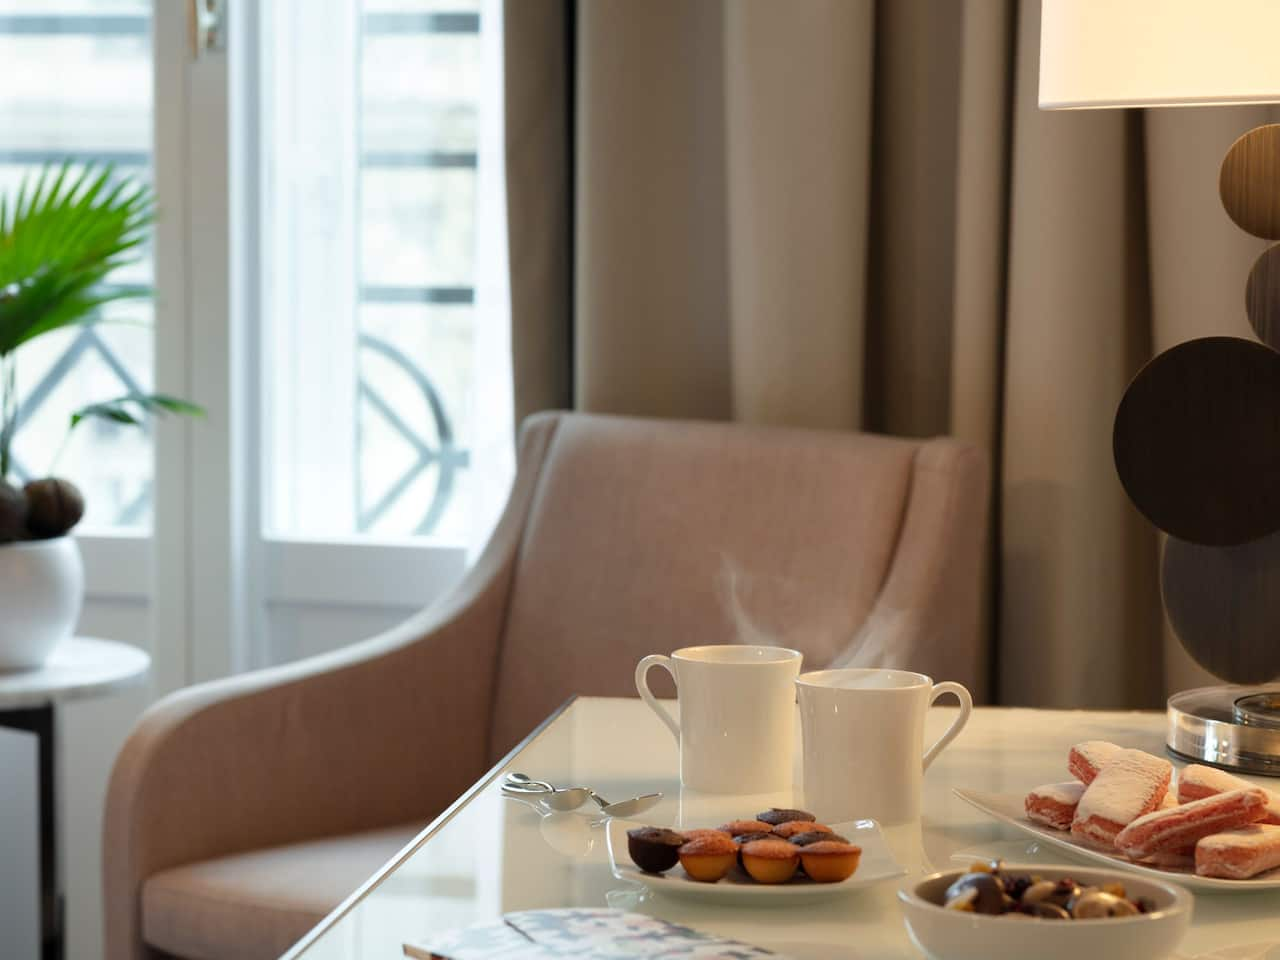 Room service at Hôtel du Louvre by Hyatt in Paris